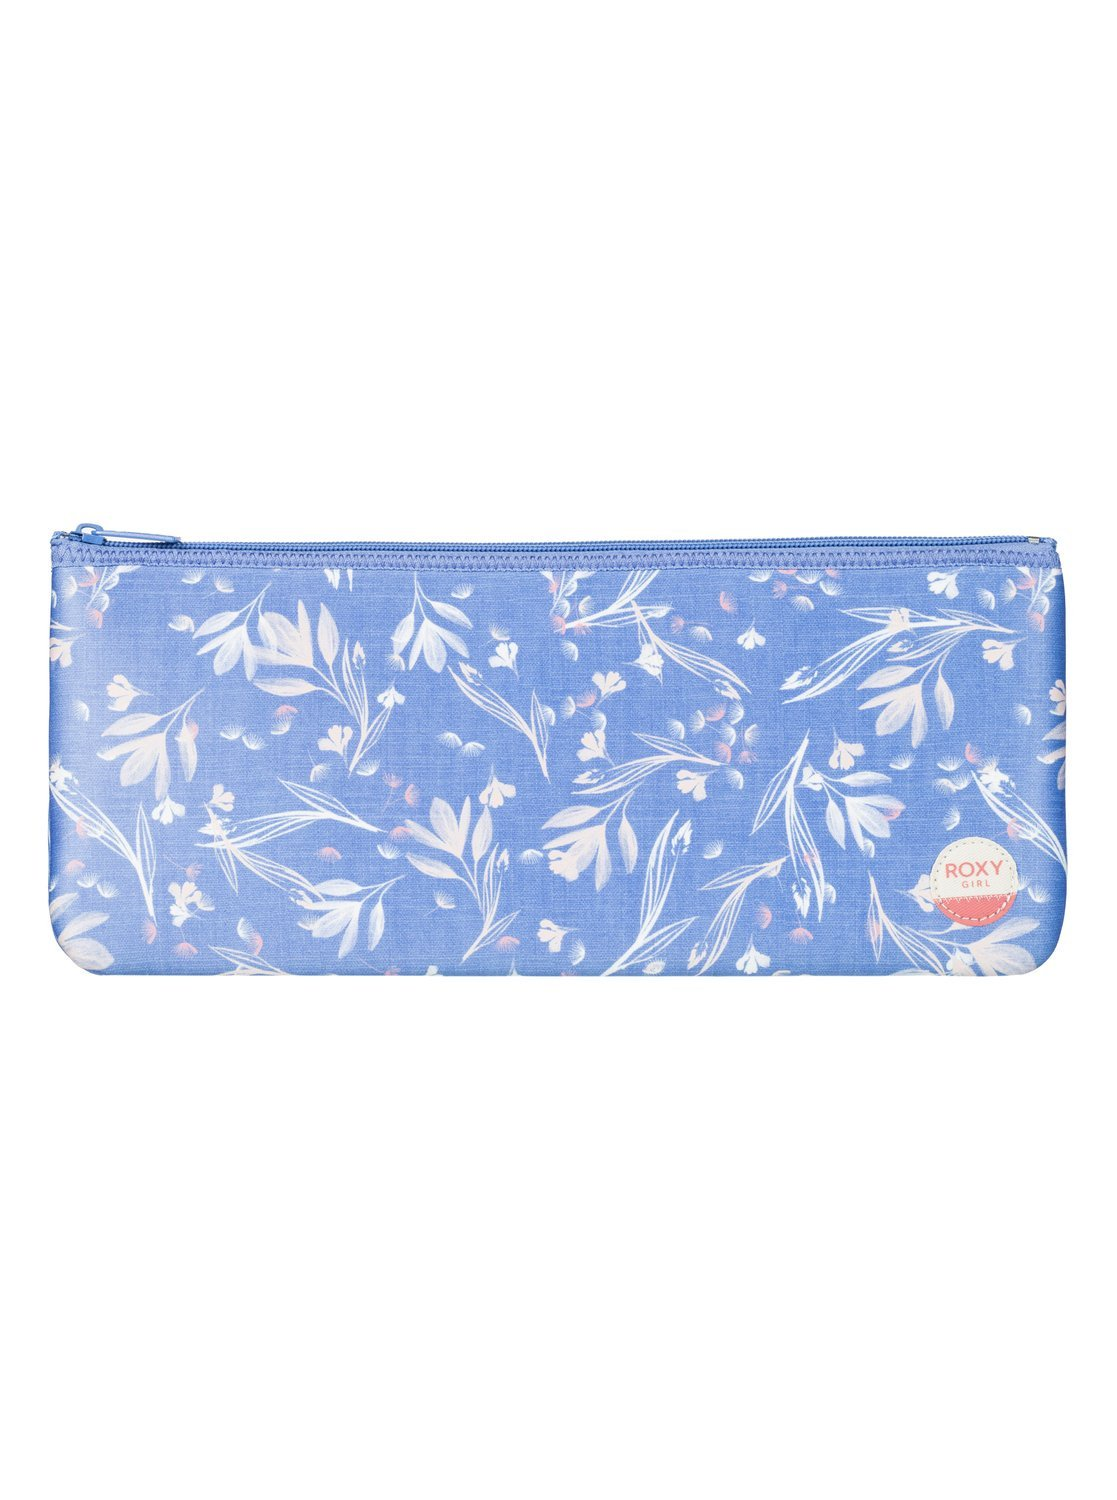 e9a8a07c9e58 Roxy Printed Emotions Pencil Case - Bleached Denim Botanic Garden - Out  There Surf